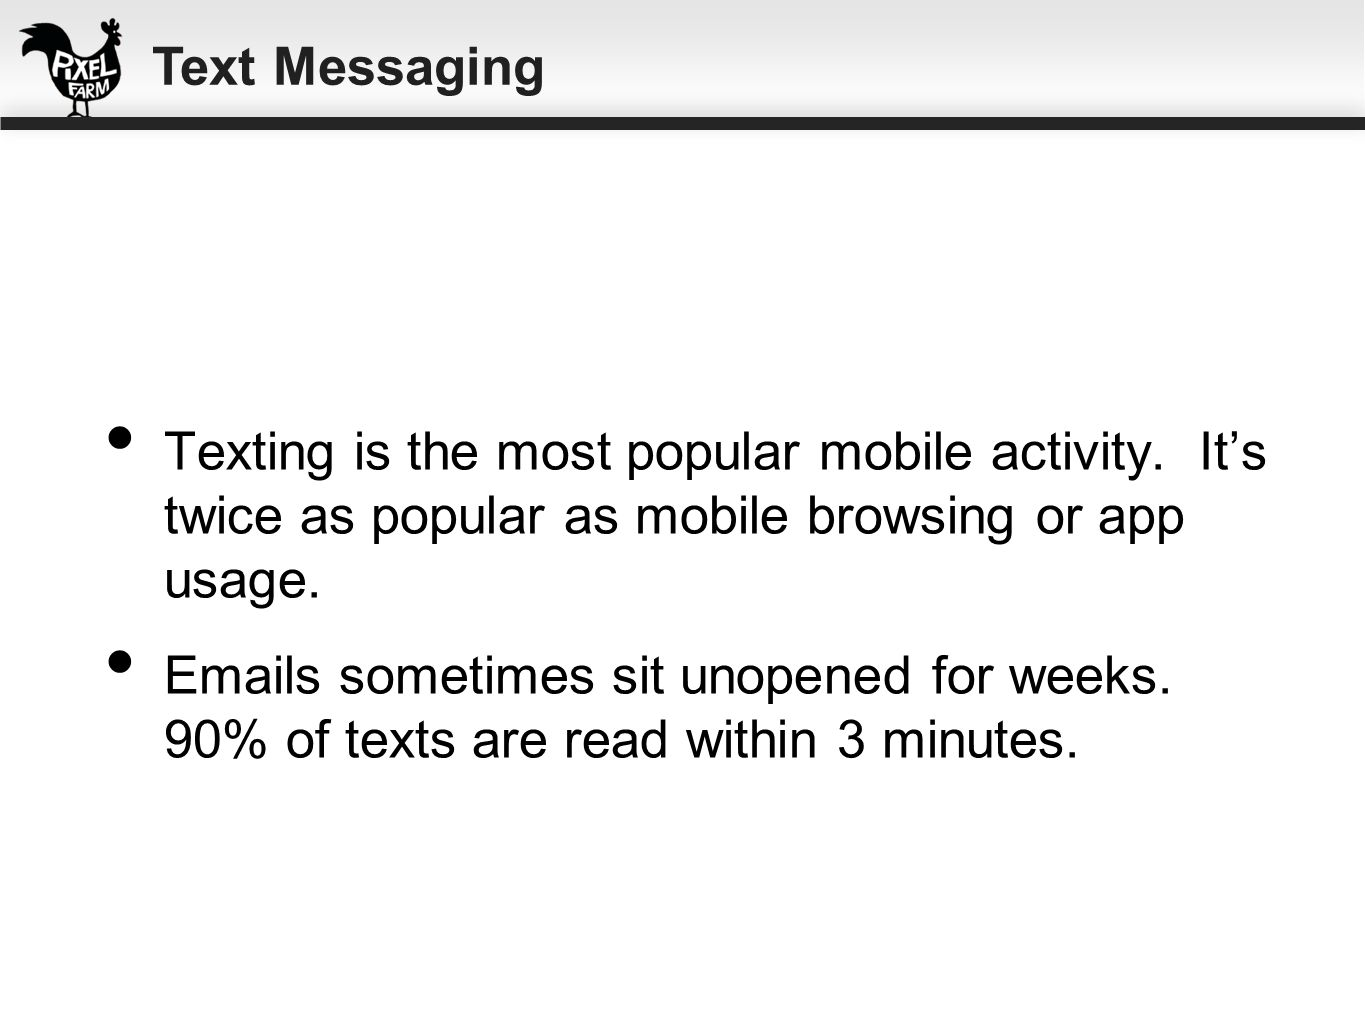 Texting is the most popular mobile activity. Its twice as popular as mobile browsing or app usage. Emails sometimes sit unopened for weeks. 90% of tex